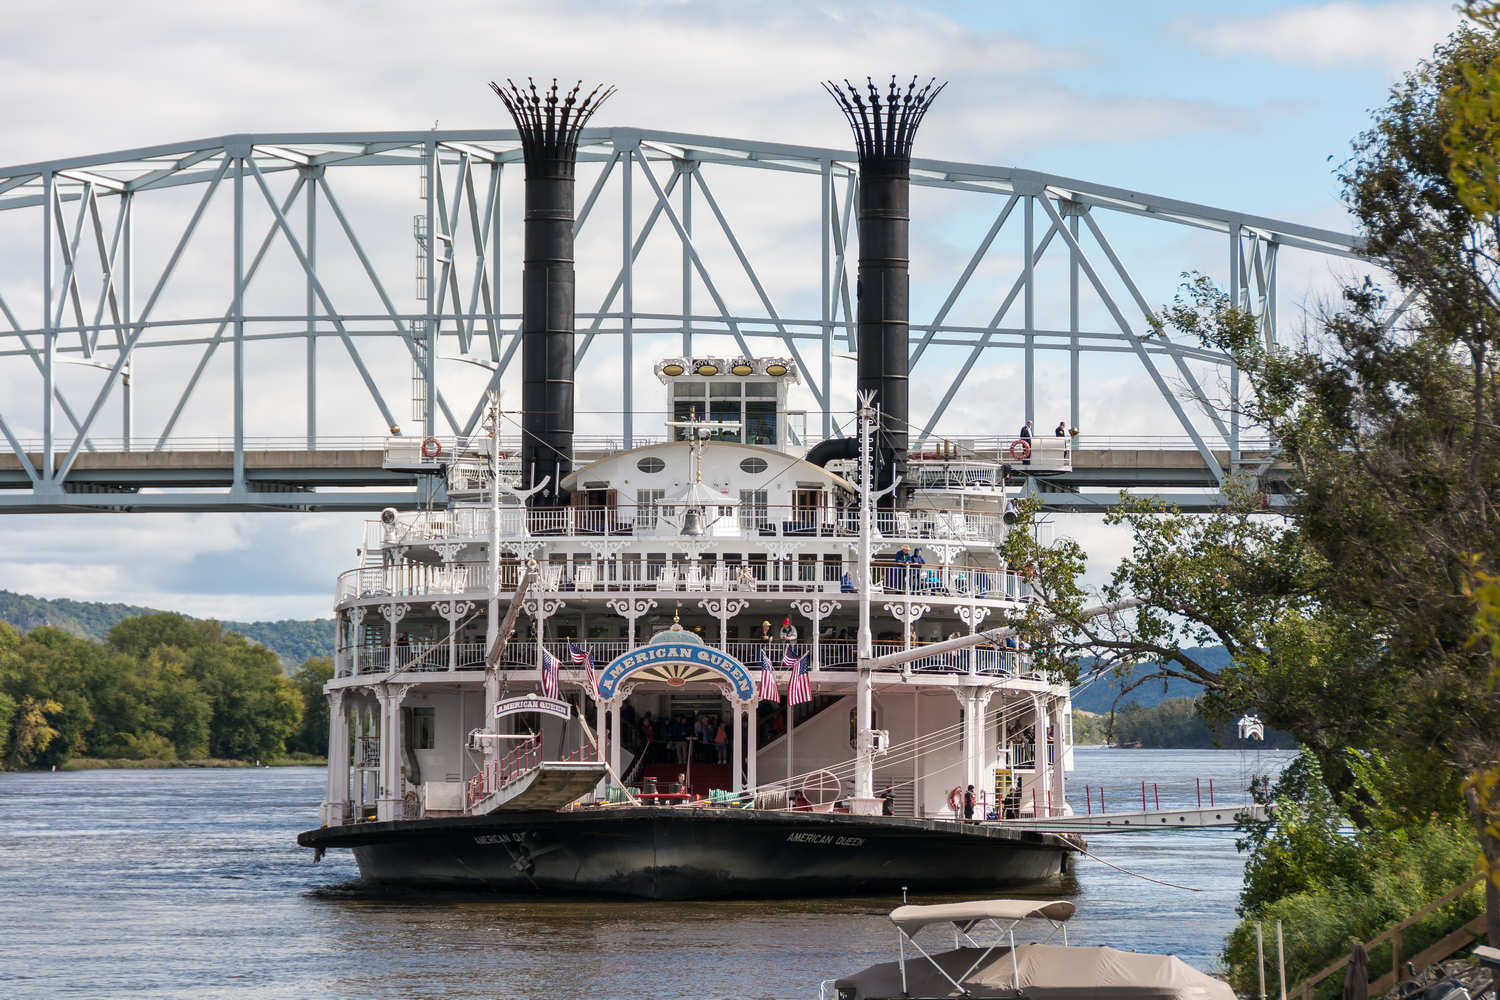 American Queen, the largest steamboat ever built. Docked in Wabasha near Slippery's.